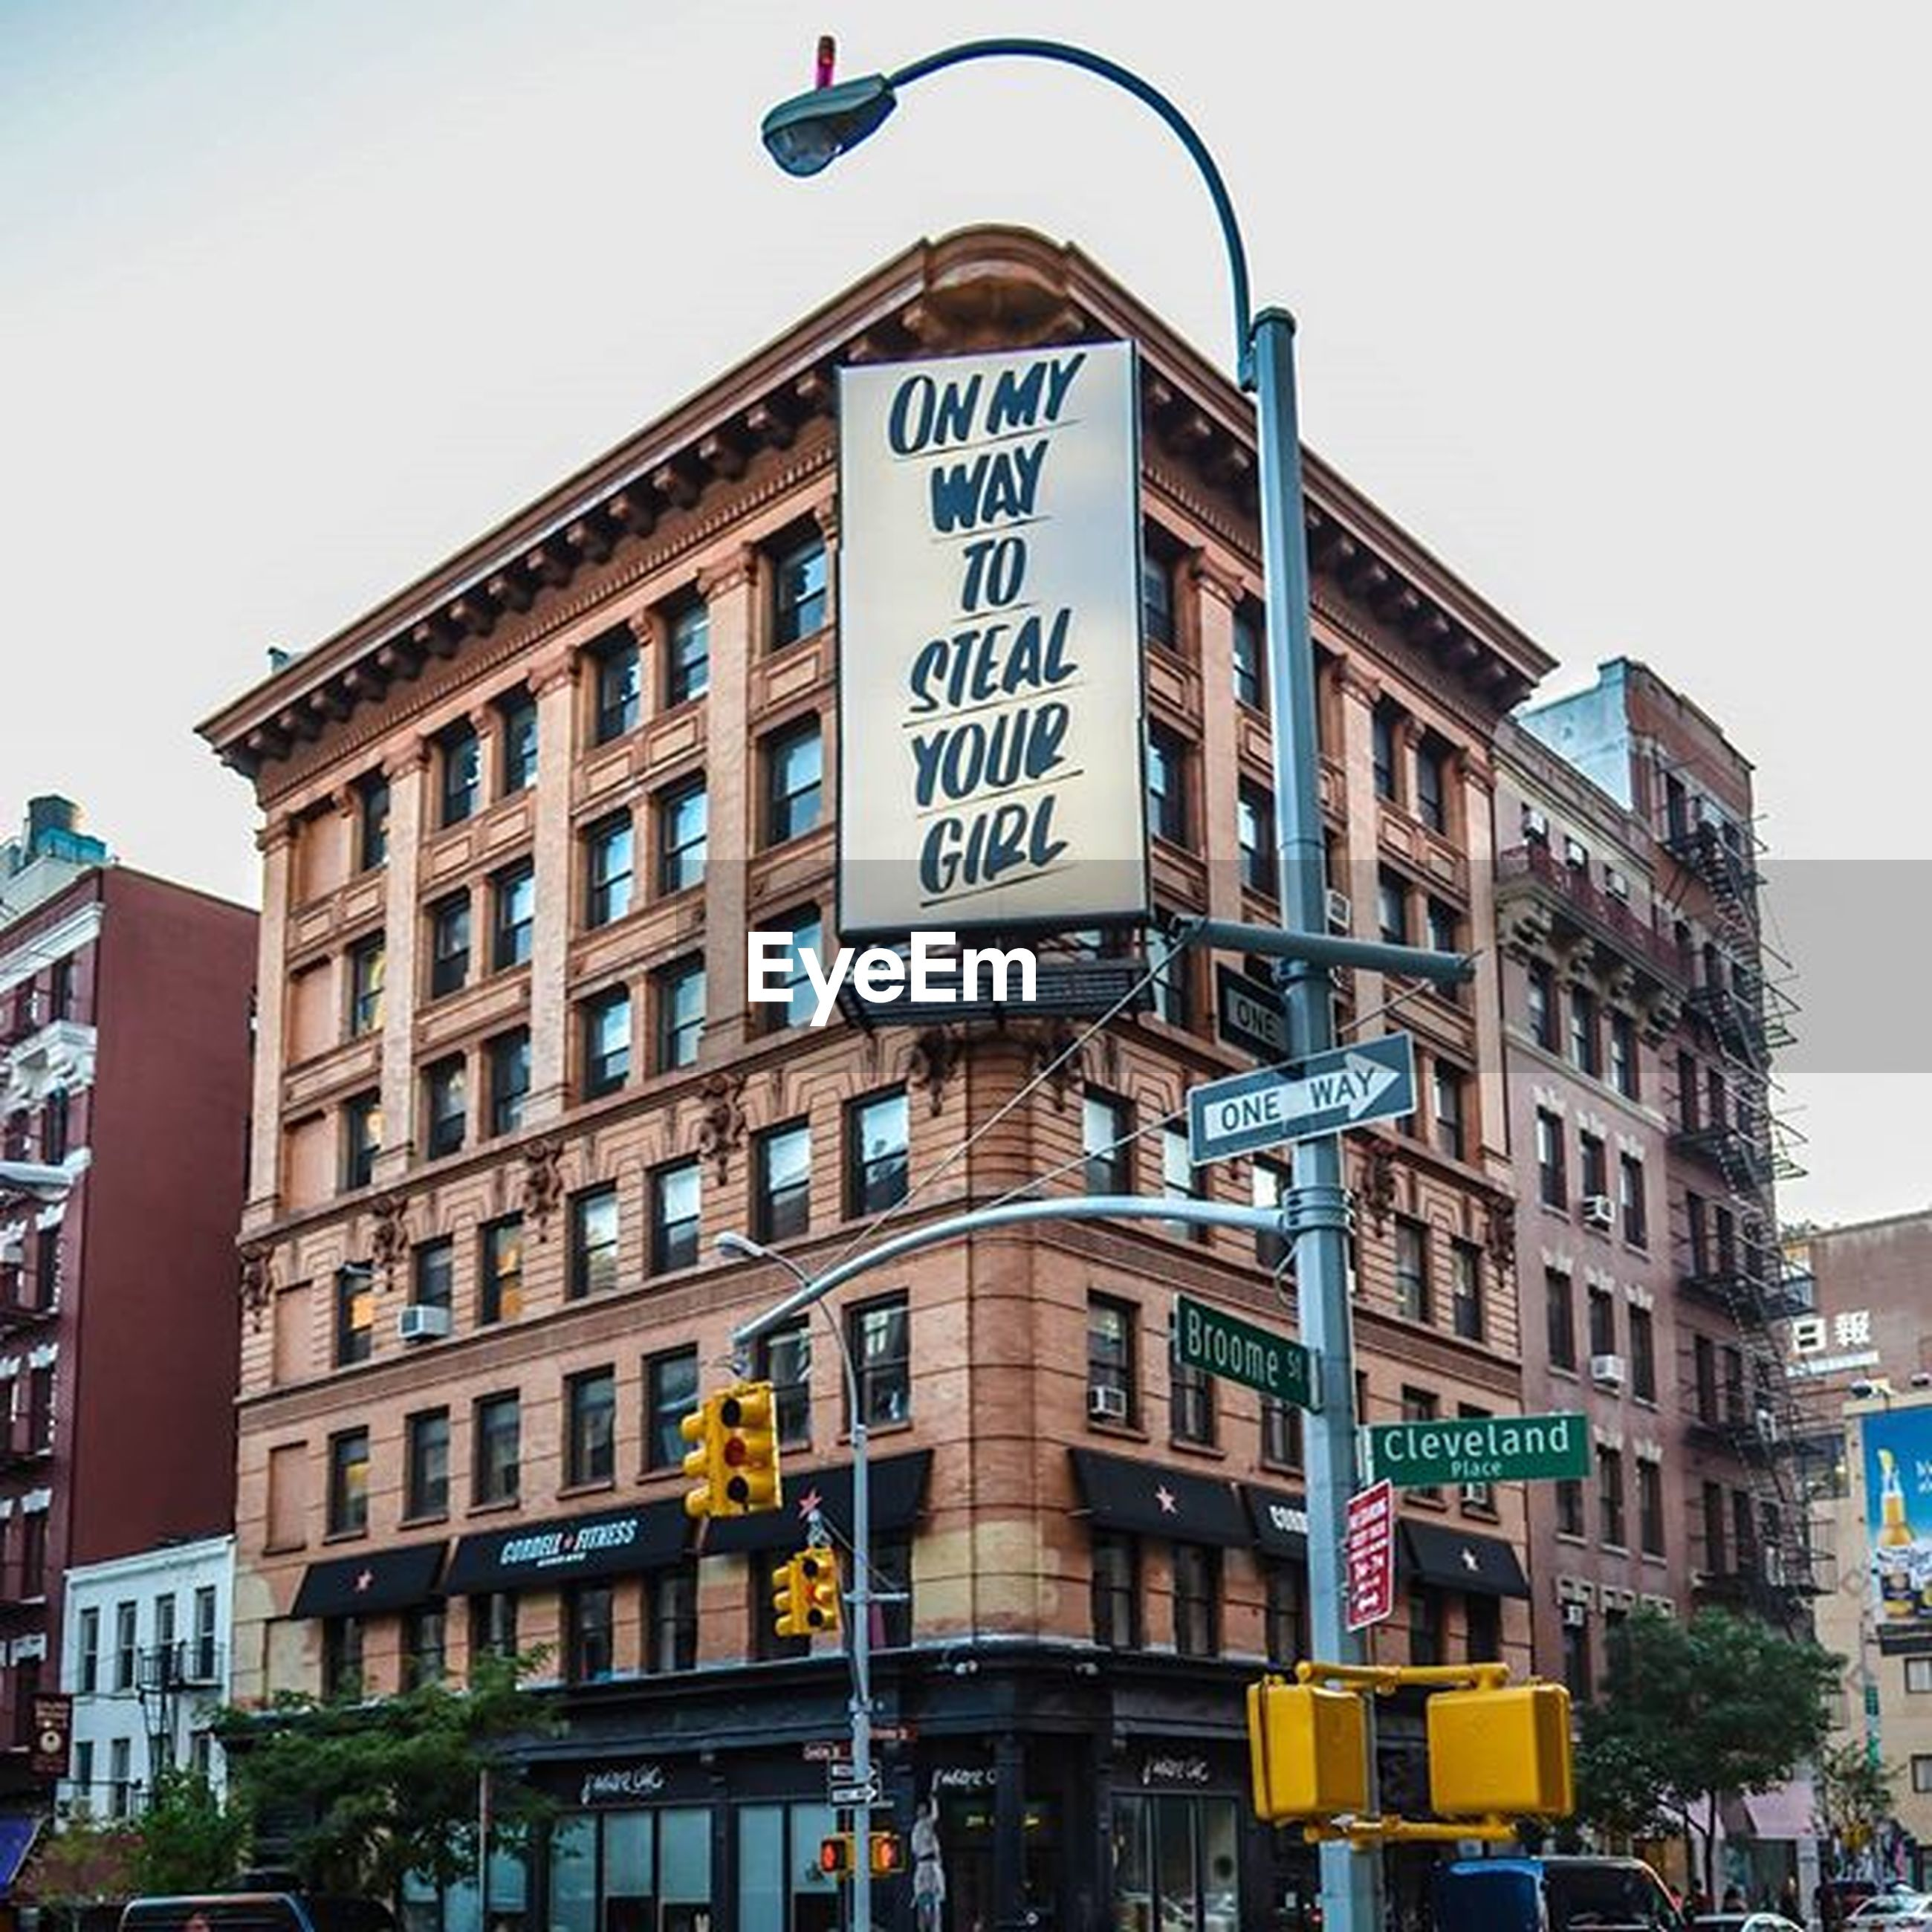 building exterior, architecture, built structure, text, city, low angle view, western script, road sign, car, street, communication, information sign, transportation, clear sky, building, city life, land vehicle, non-western script, street light, sky